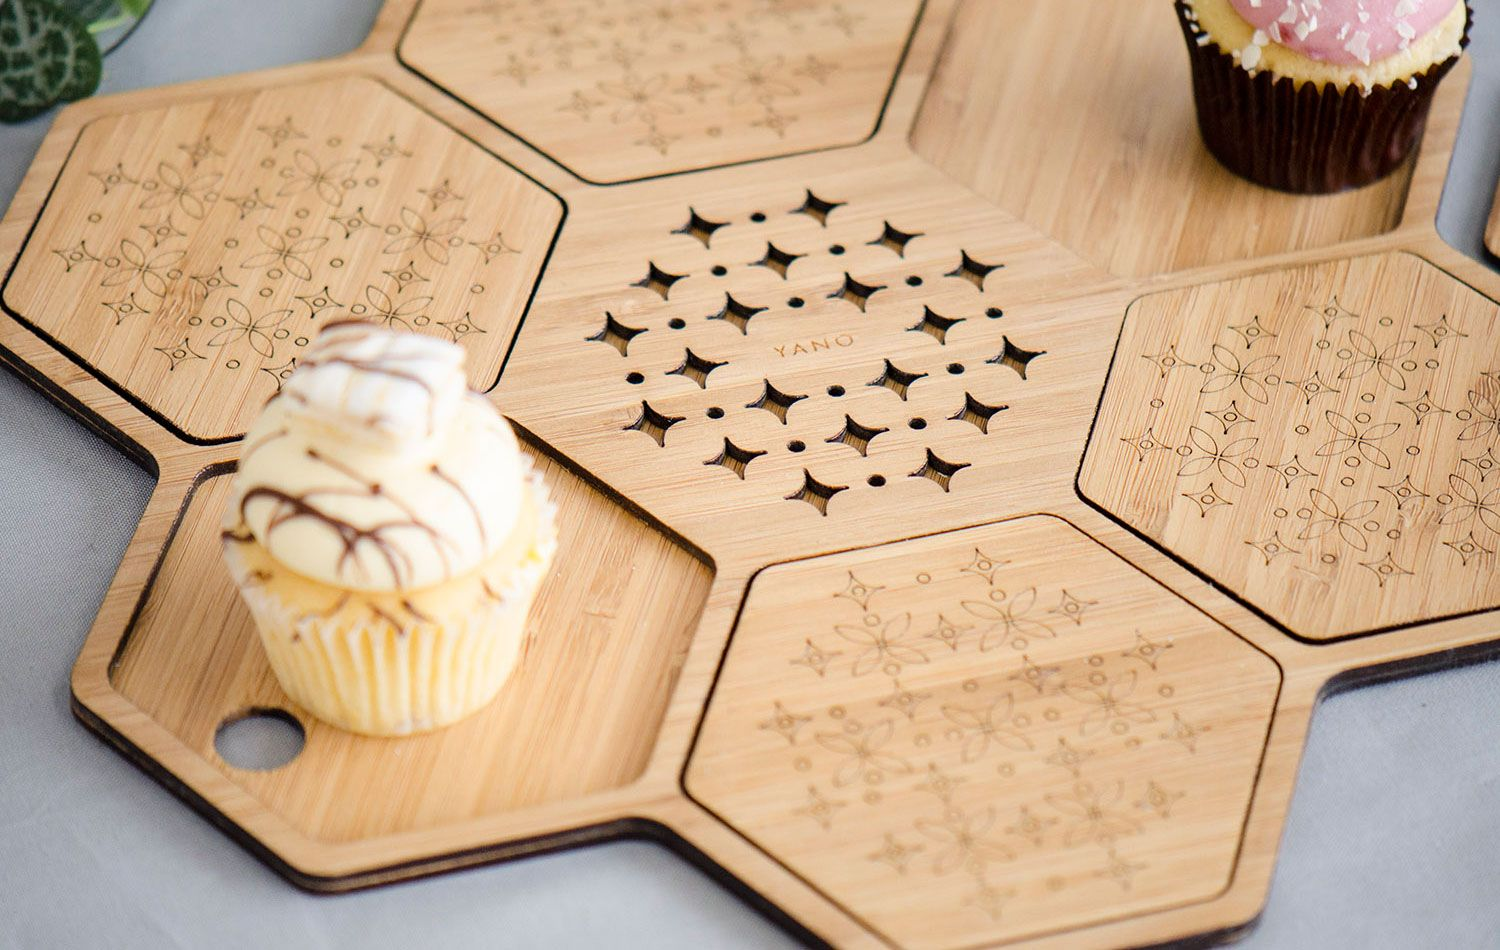 Products | Home Decor by Yano Designs - Designed & made with ♥ in Melbourne, Australia | Bamboo Coaster Set